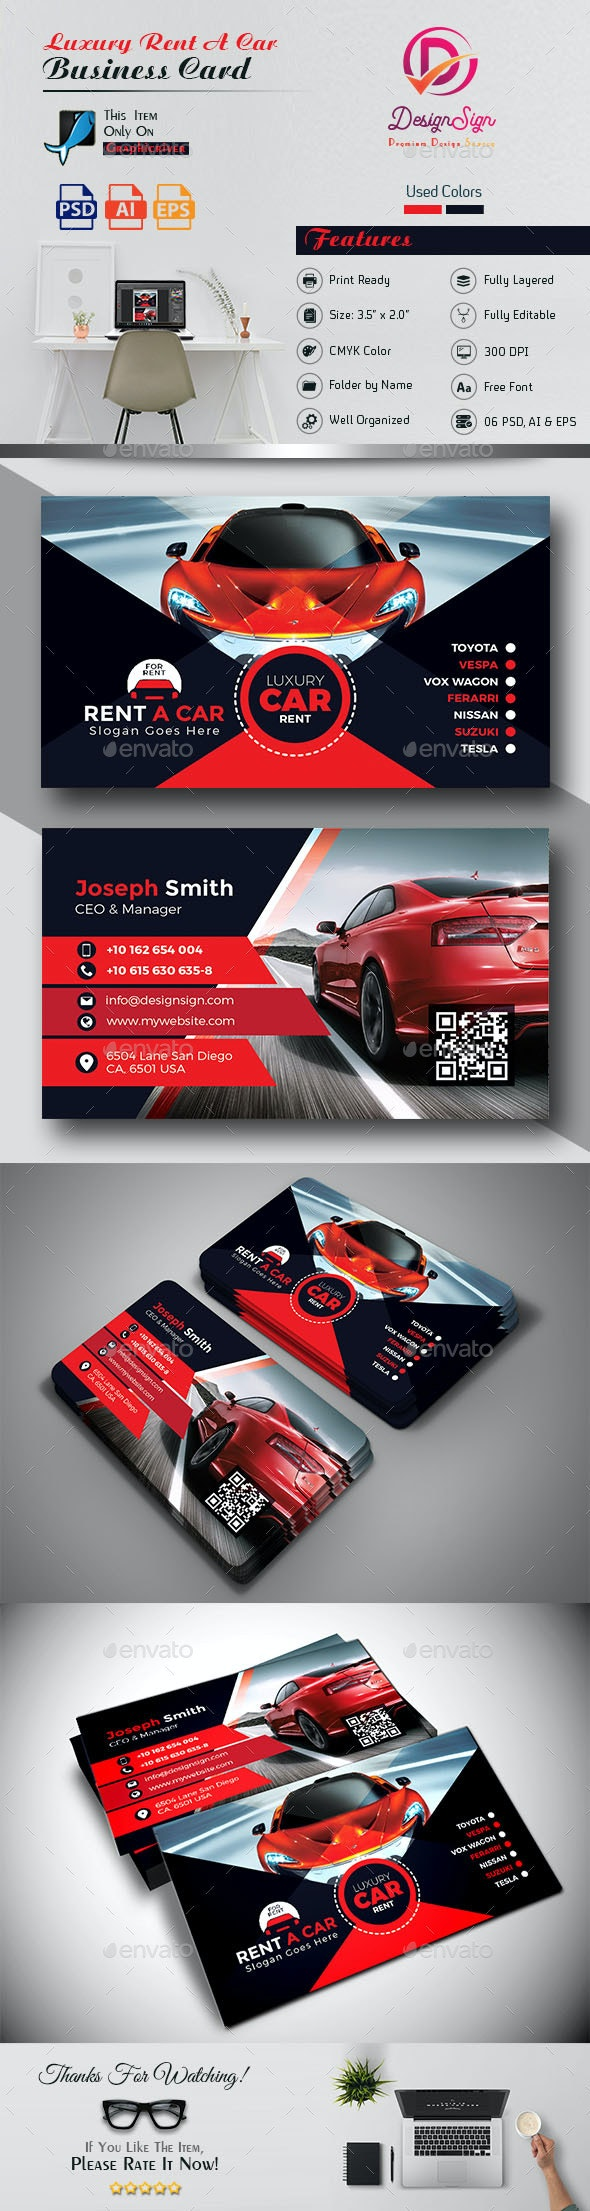 Luxury Rent A Car Business Card - Industry Specific Business Cards